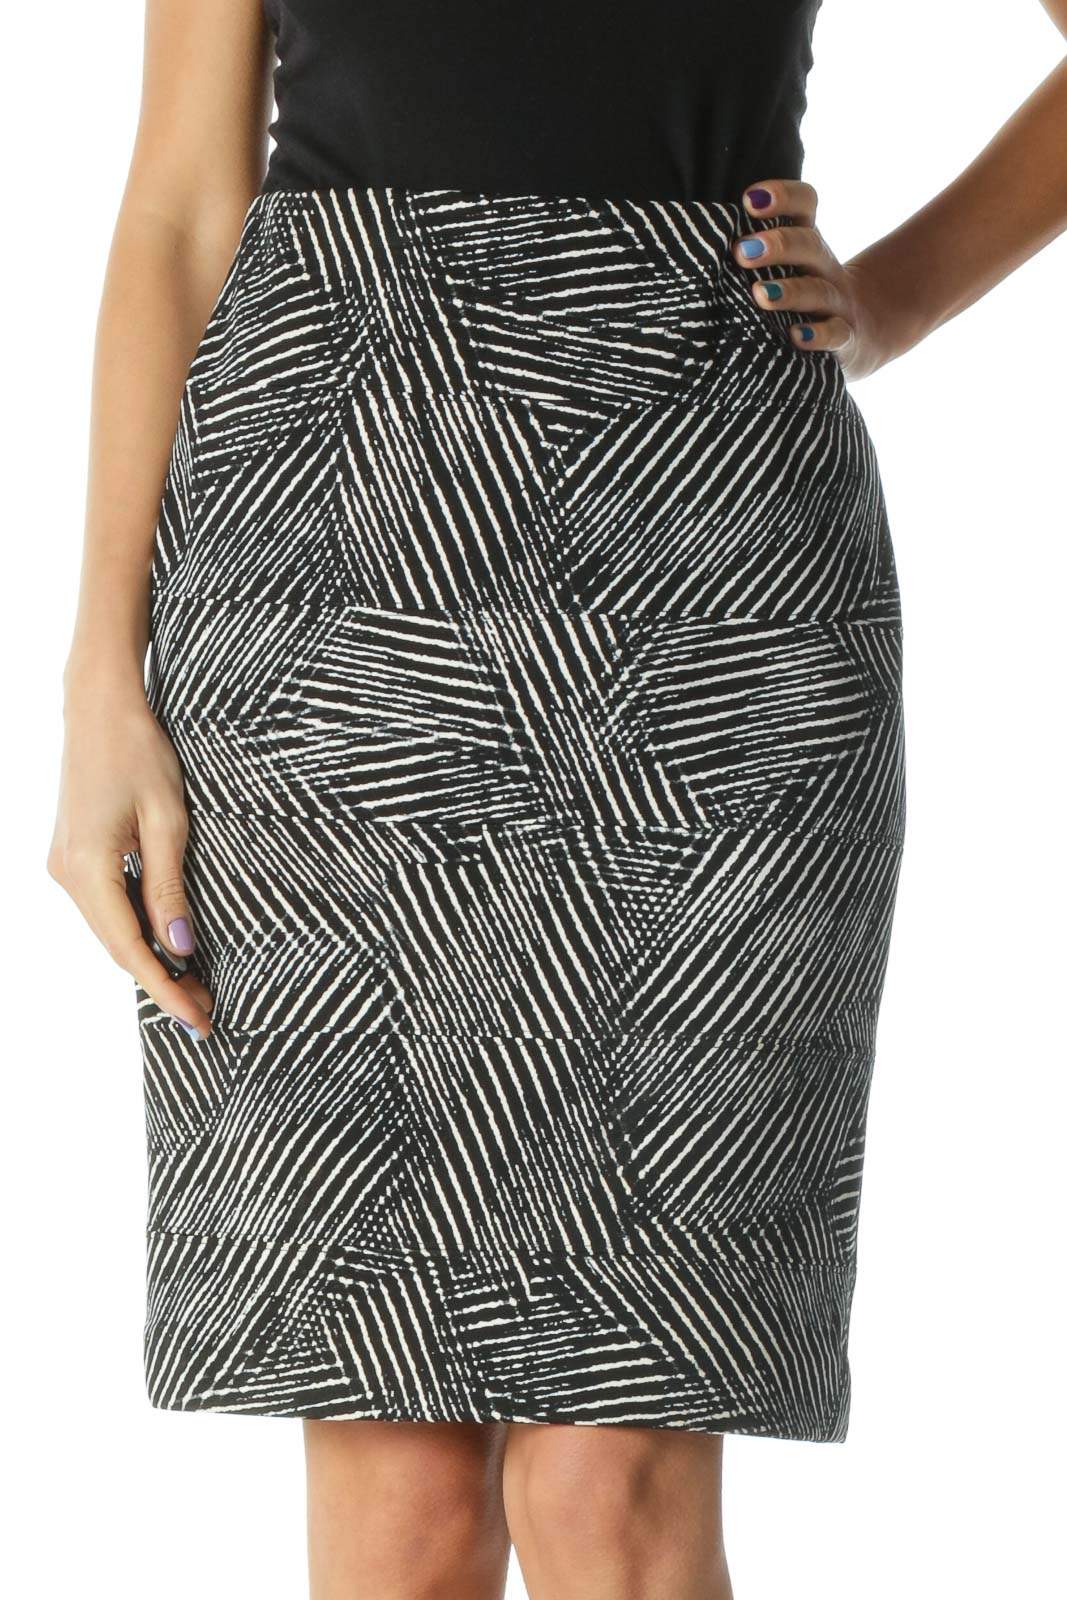 Black and White Zebra Print Bandage Wrap Pencil Skirt Front